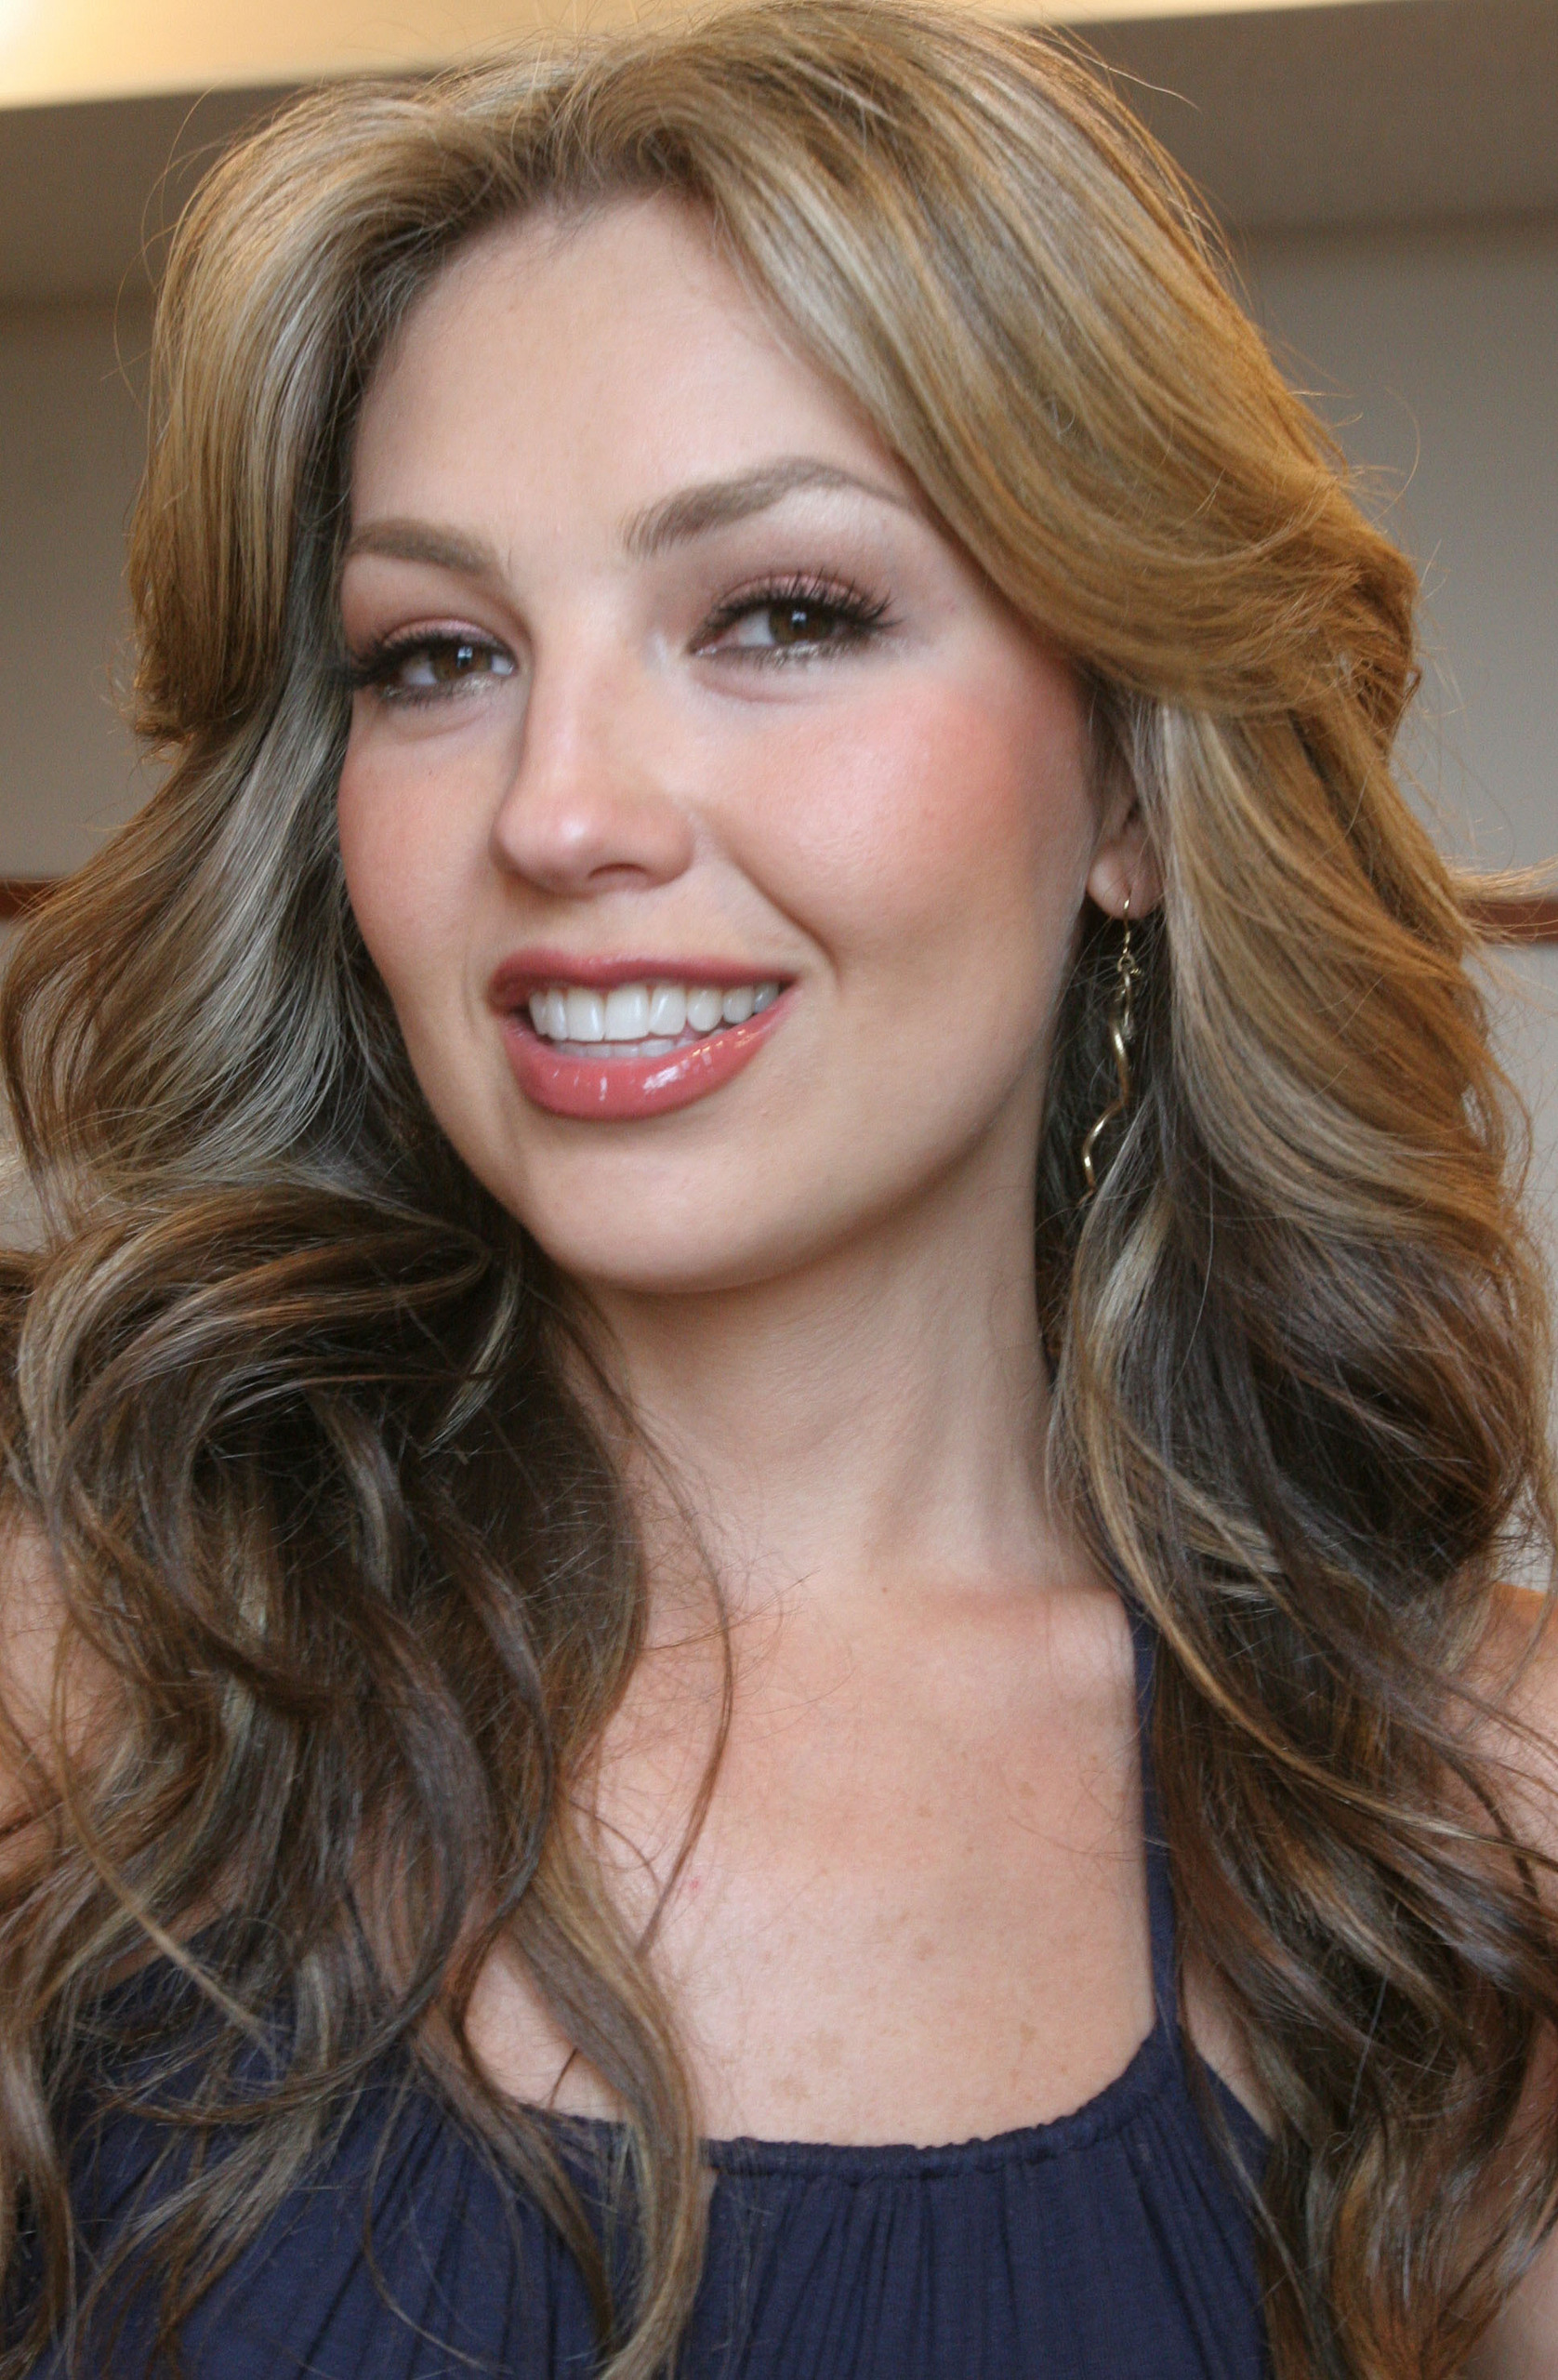 """Thalia poses for a photograph Tuesday, June 6, 2006, in New York.  Her new album """"El sexto sentido RE+LOADED"""" is being released today.  (AP Photo/Tina Fineberg)"""